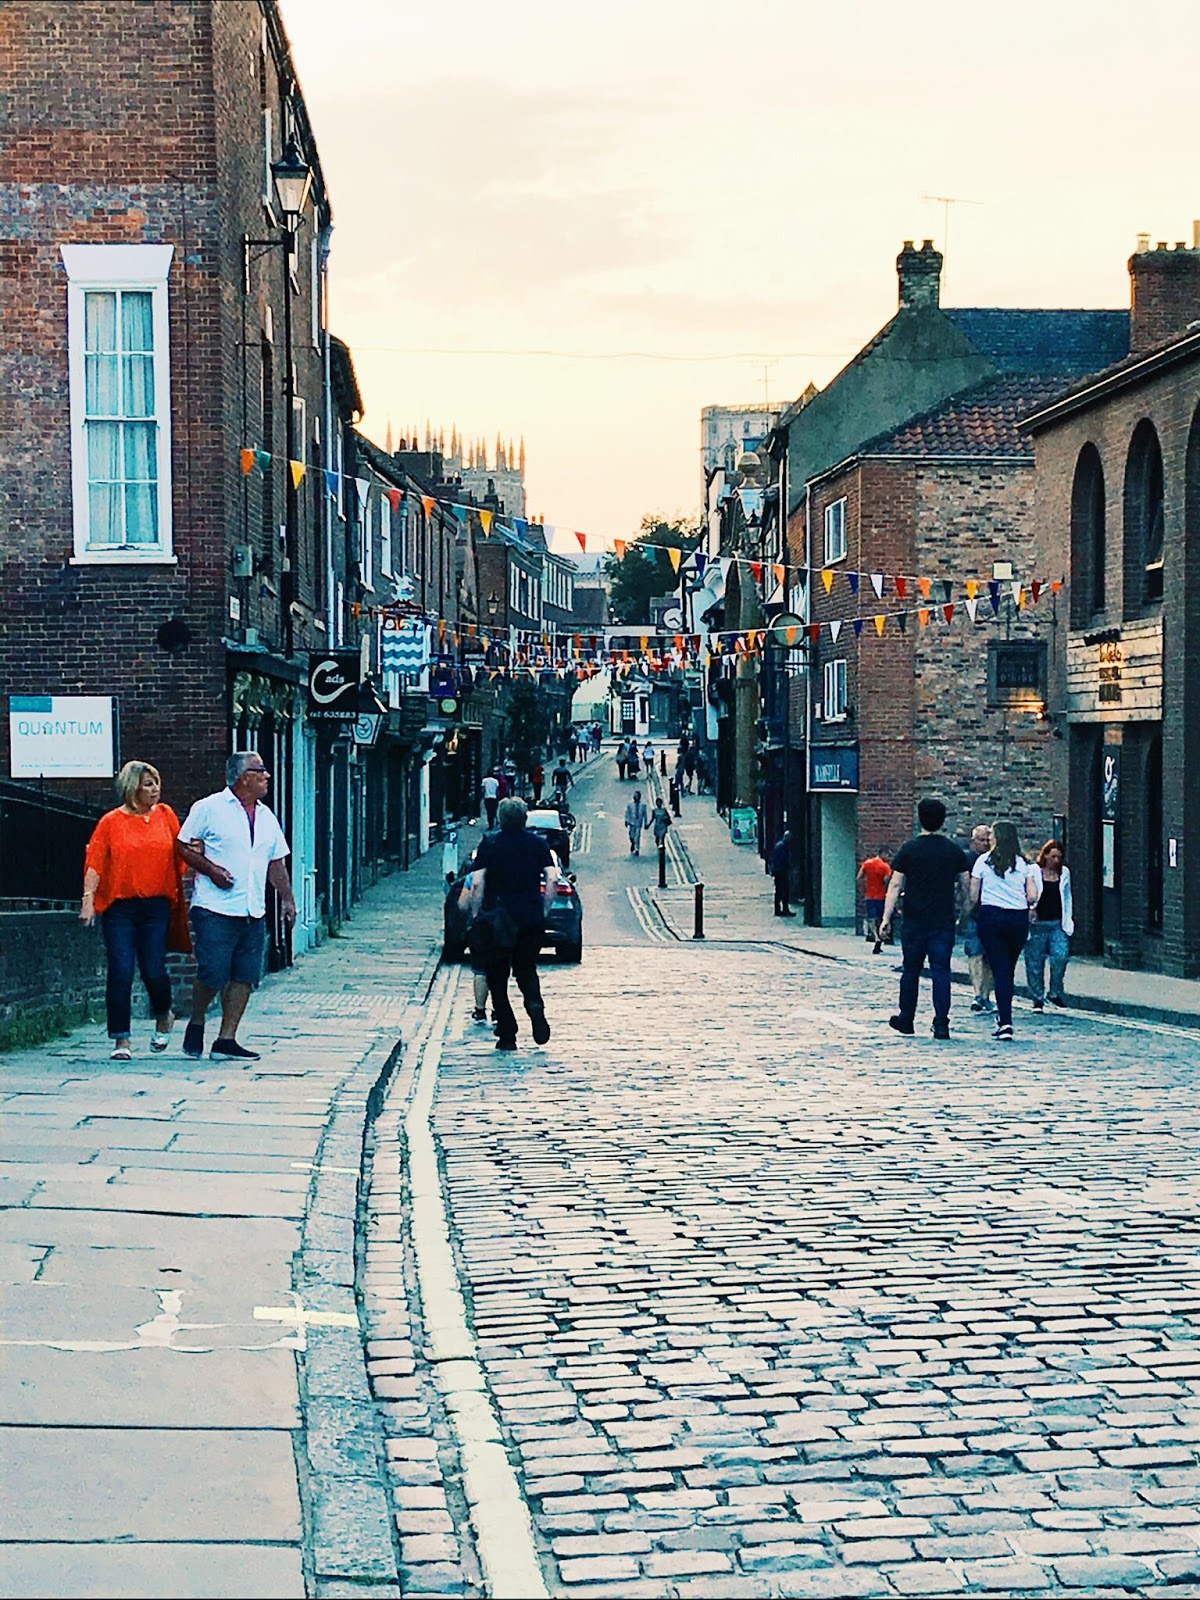 Streets of York in the evening